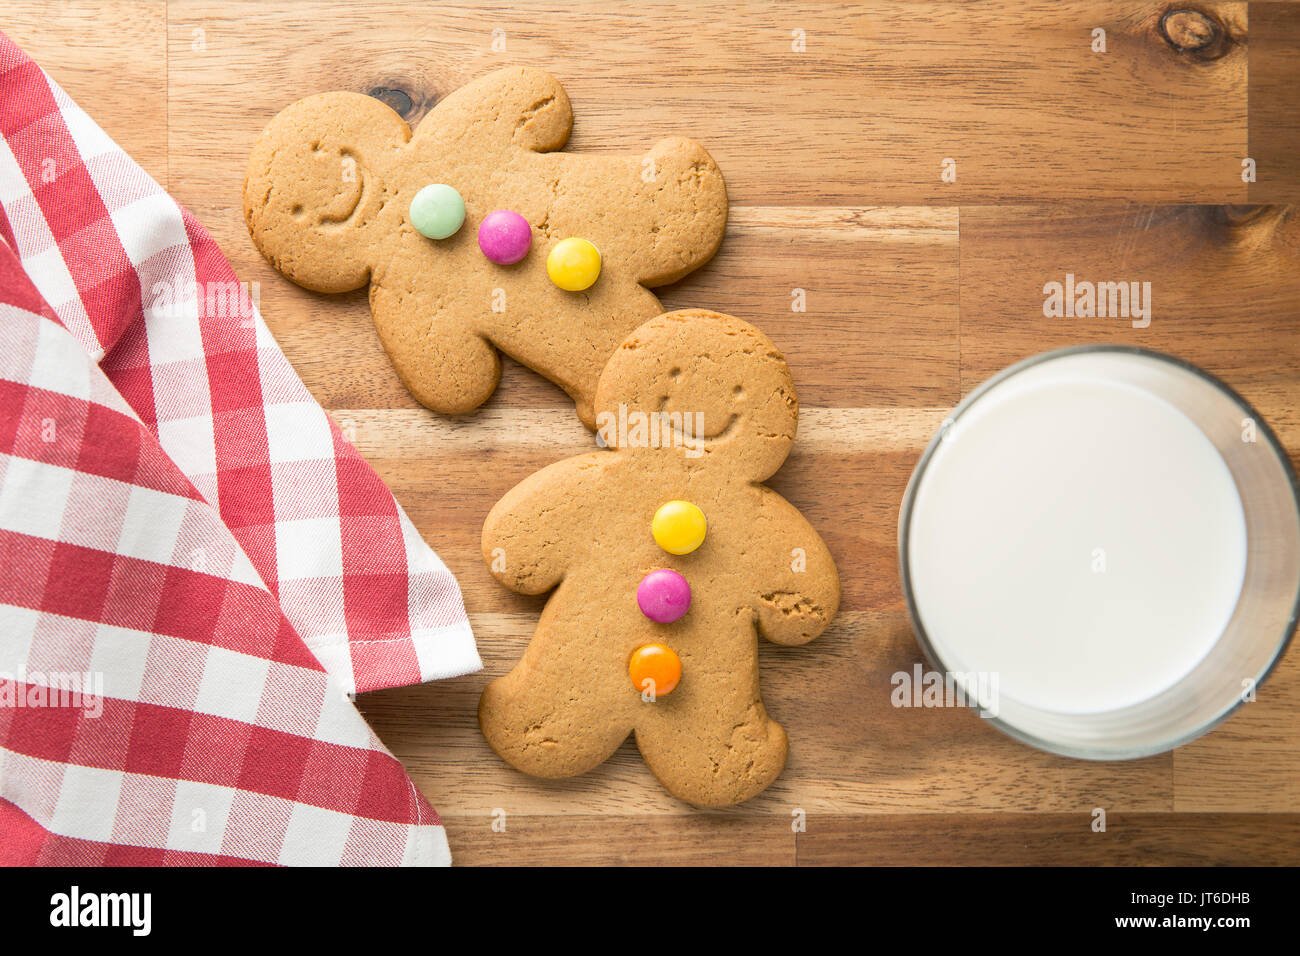 Sweet gingerbread men and glass of milk. Xmas gingerbread on wooden table. - Stock Image